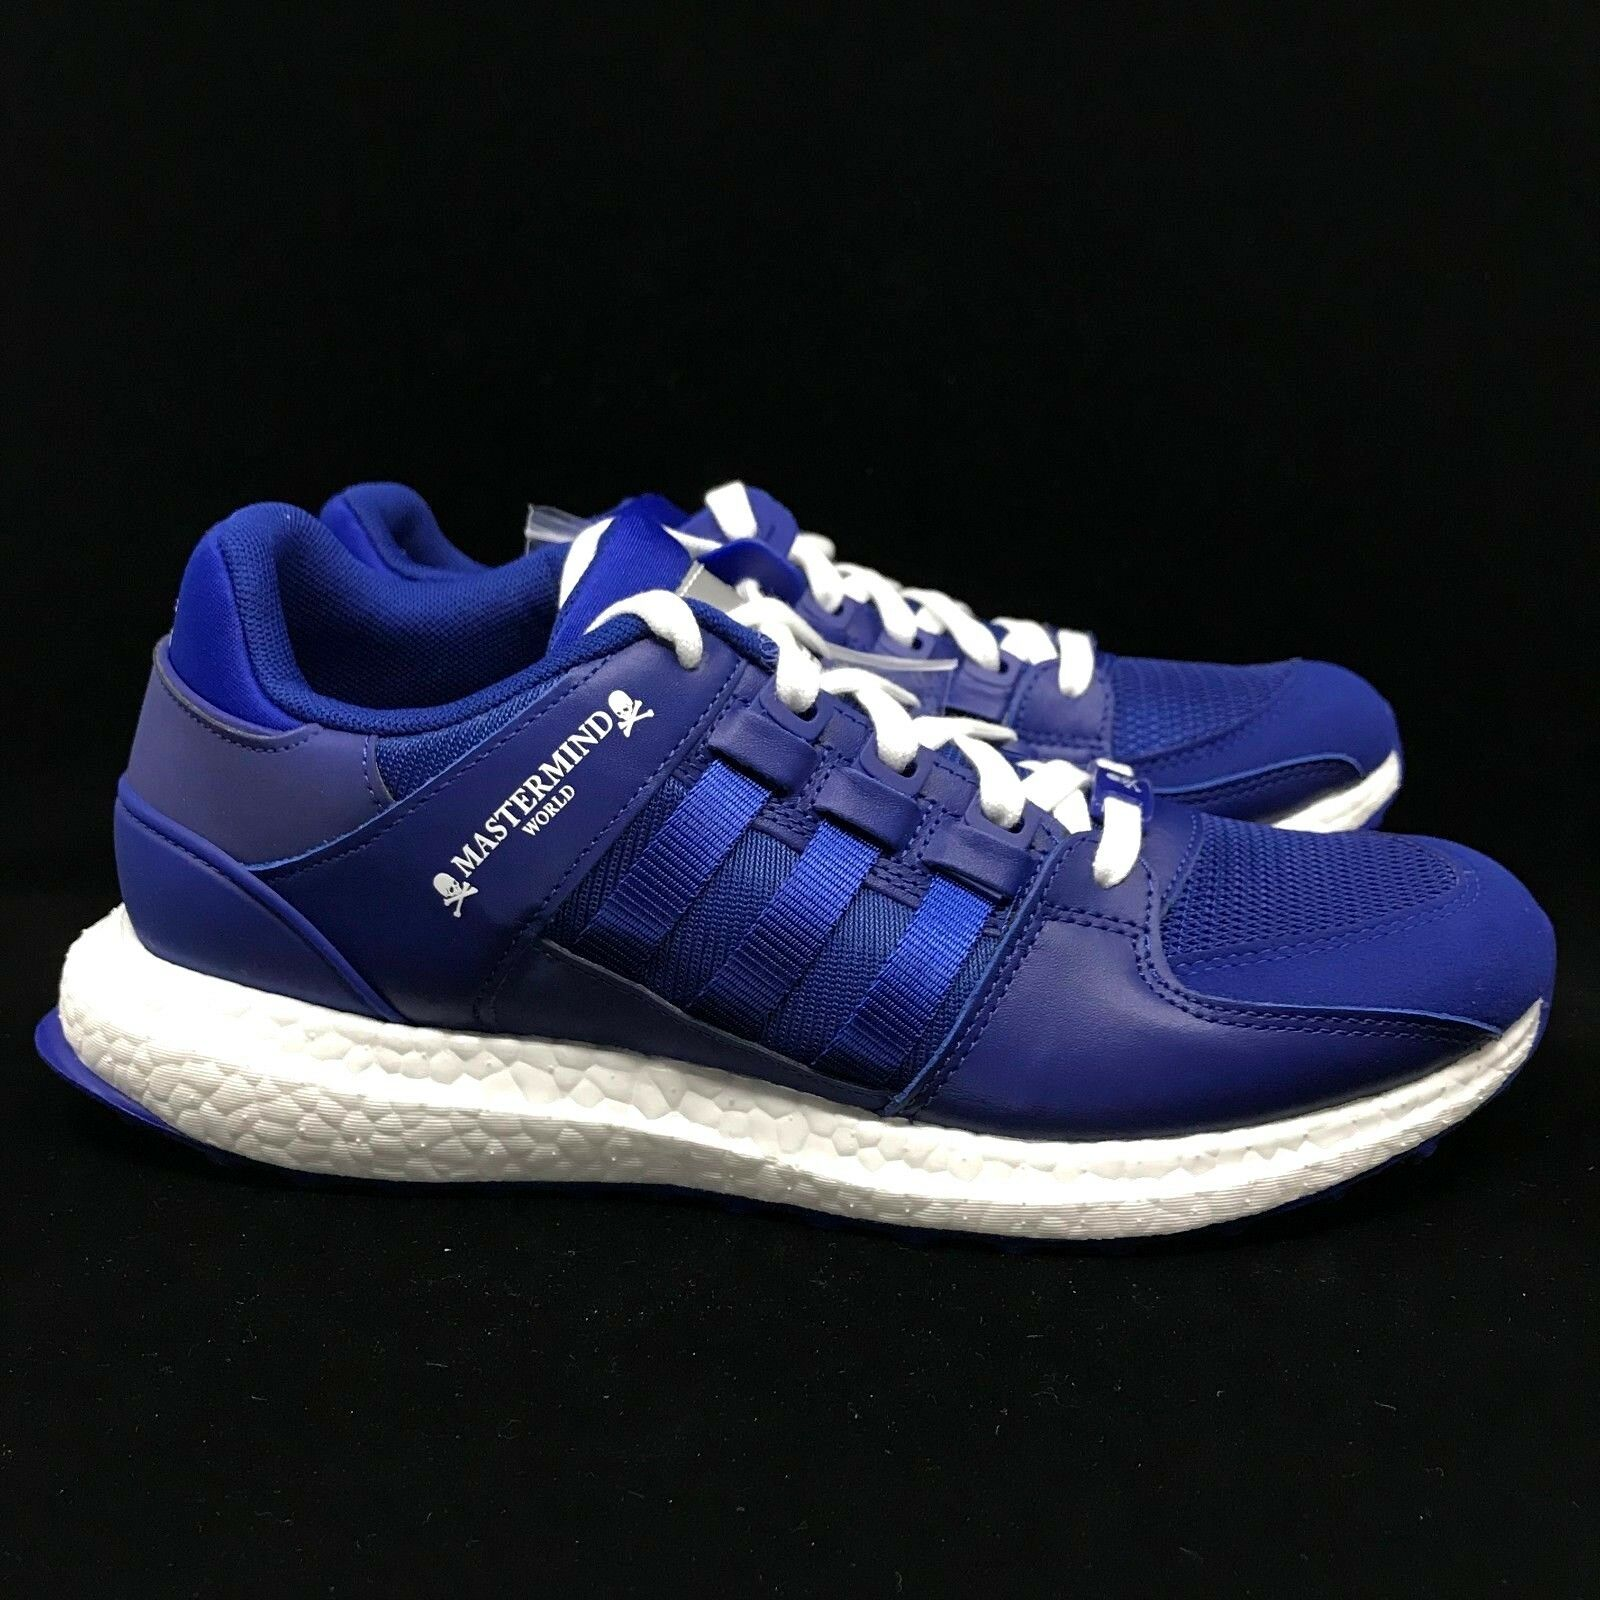 Adidas EQT Support Ultra Boost MMW Mastermind World Mystery bluee White CQ1827